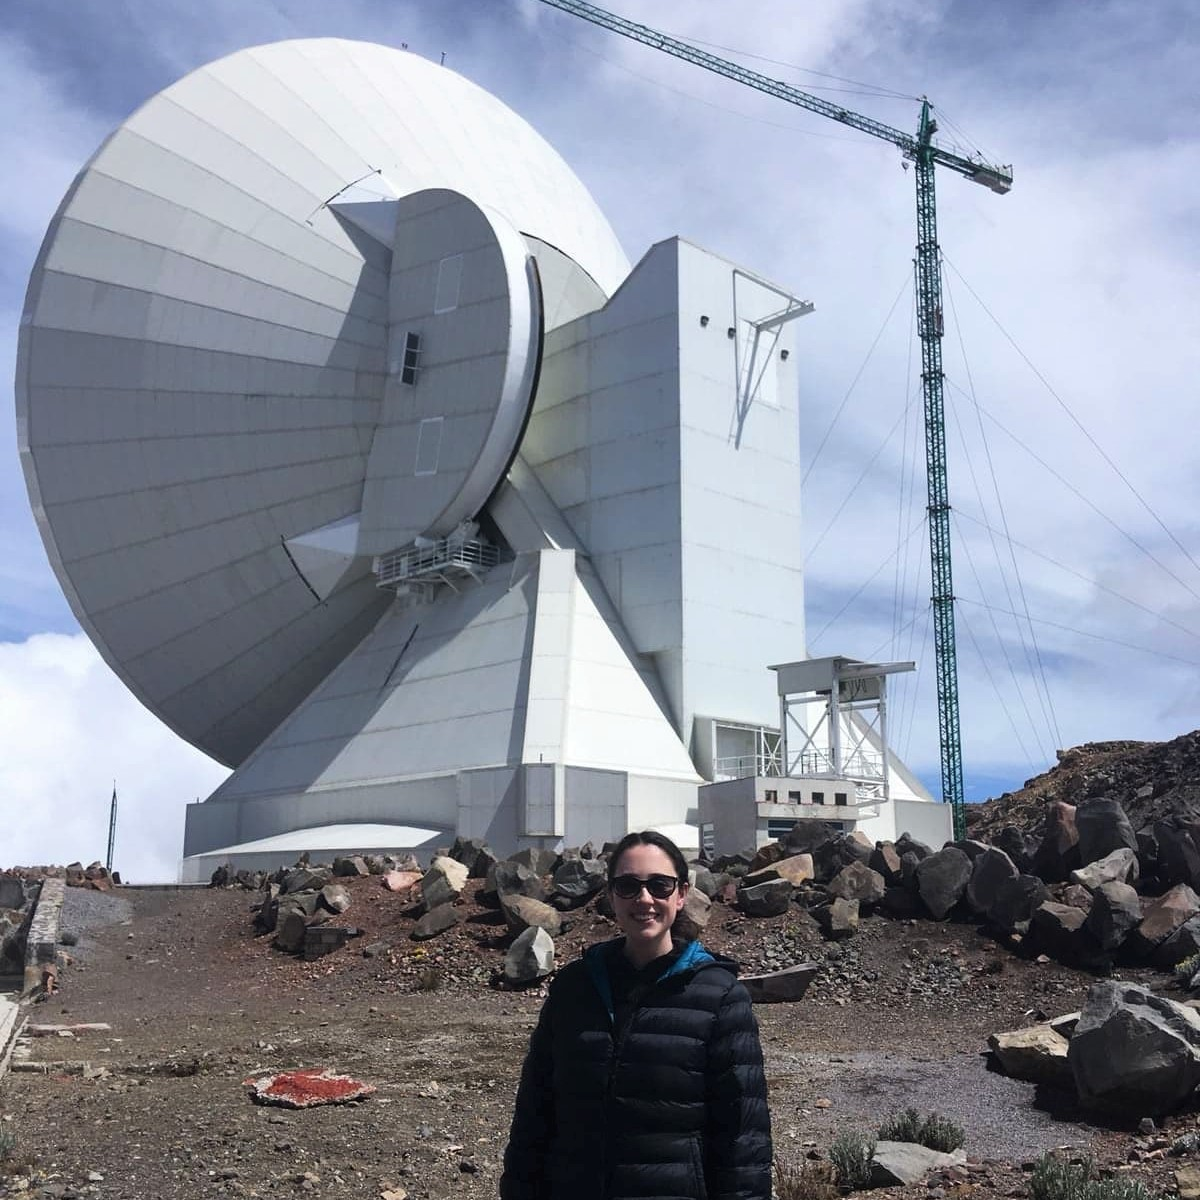 Eimear Gallagher is standing in front of the Large Millimetre Telescope